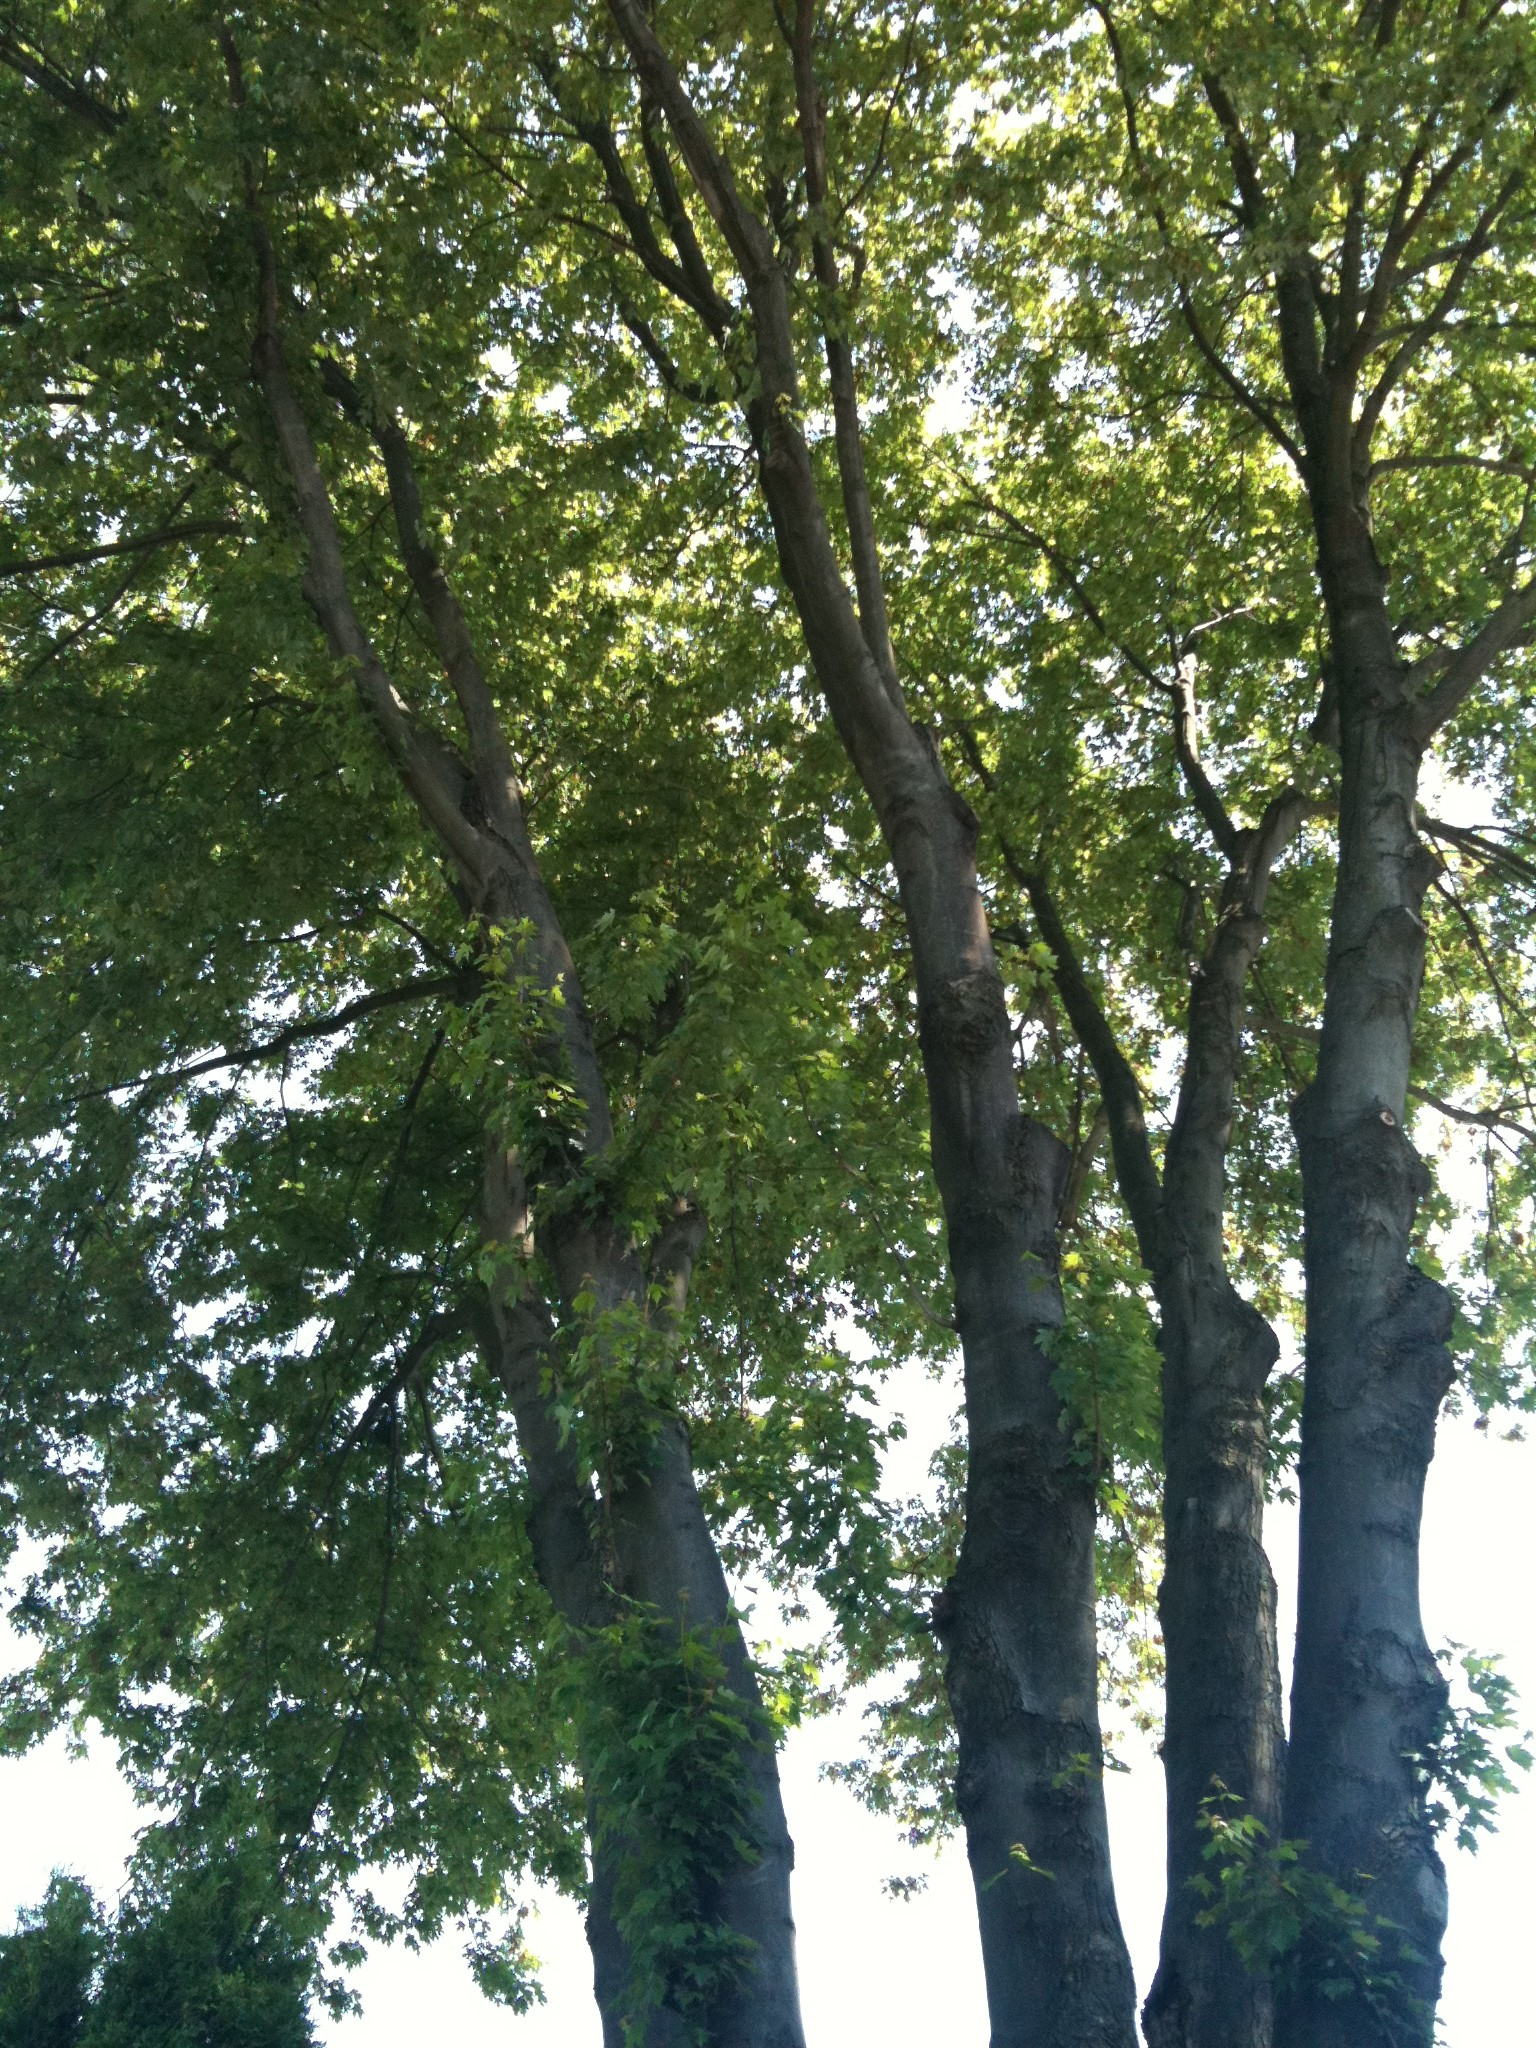 Trees on my walk